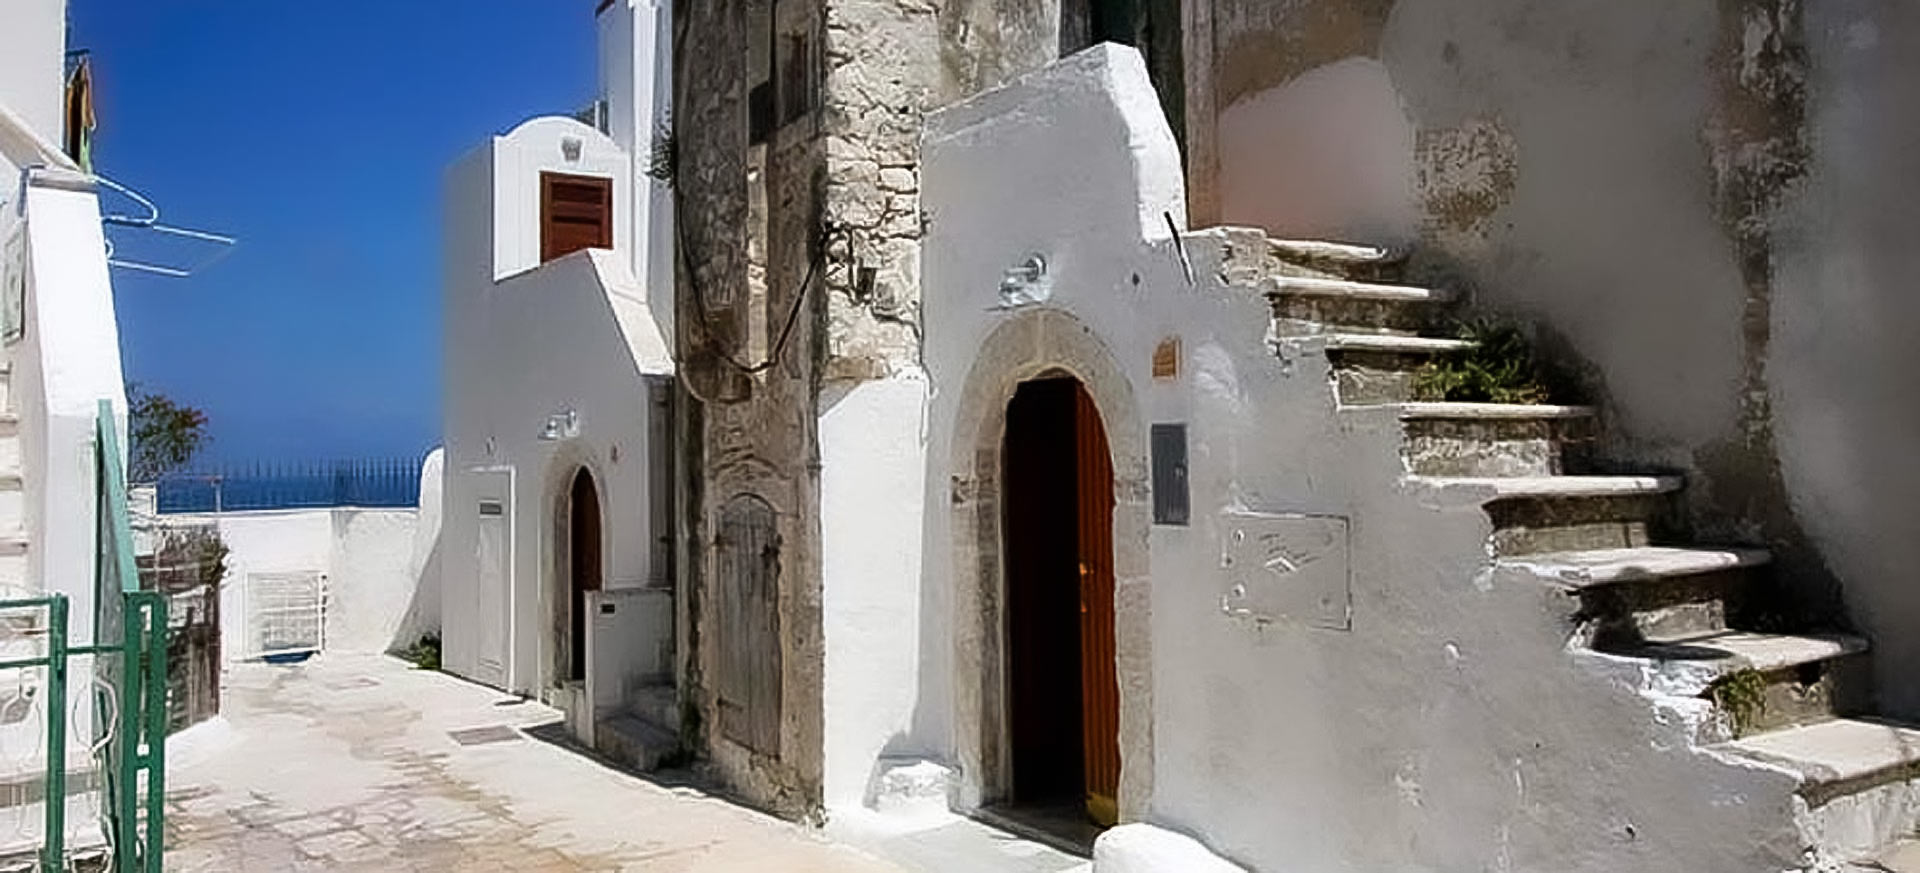 puglia small luxury hotels and bed and breakfasts hote